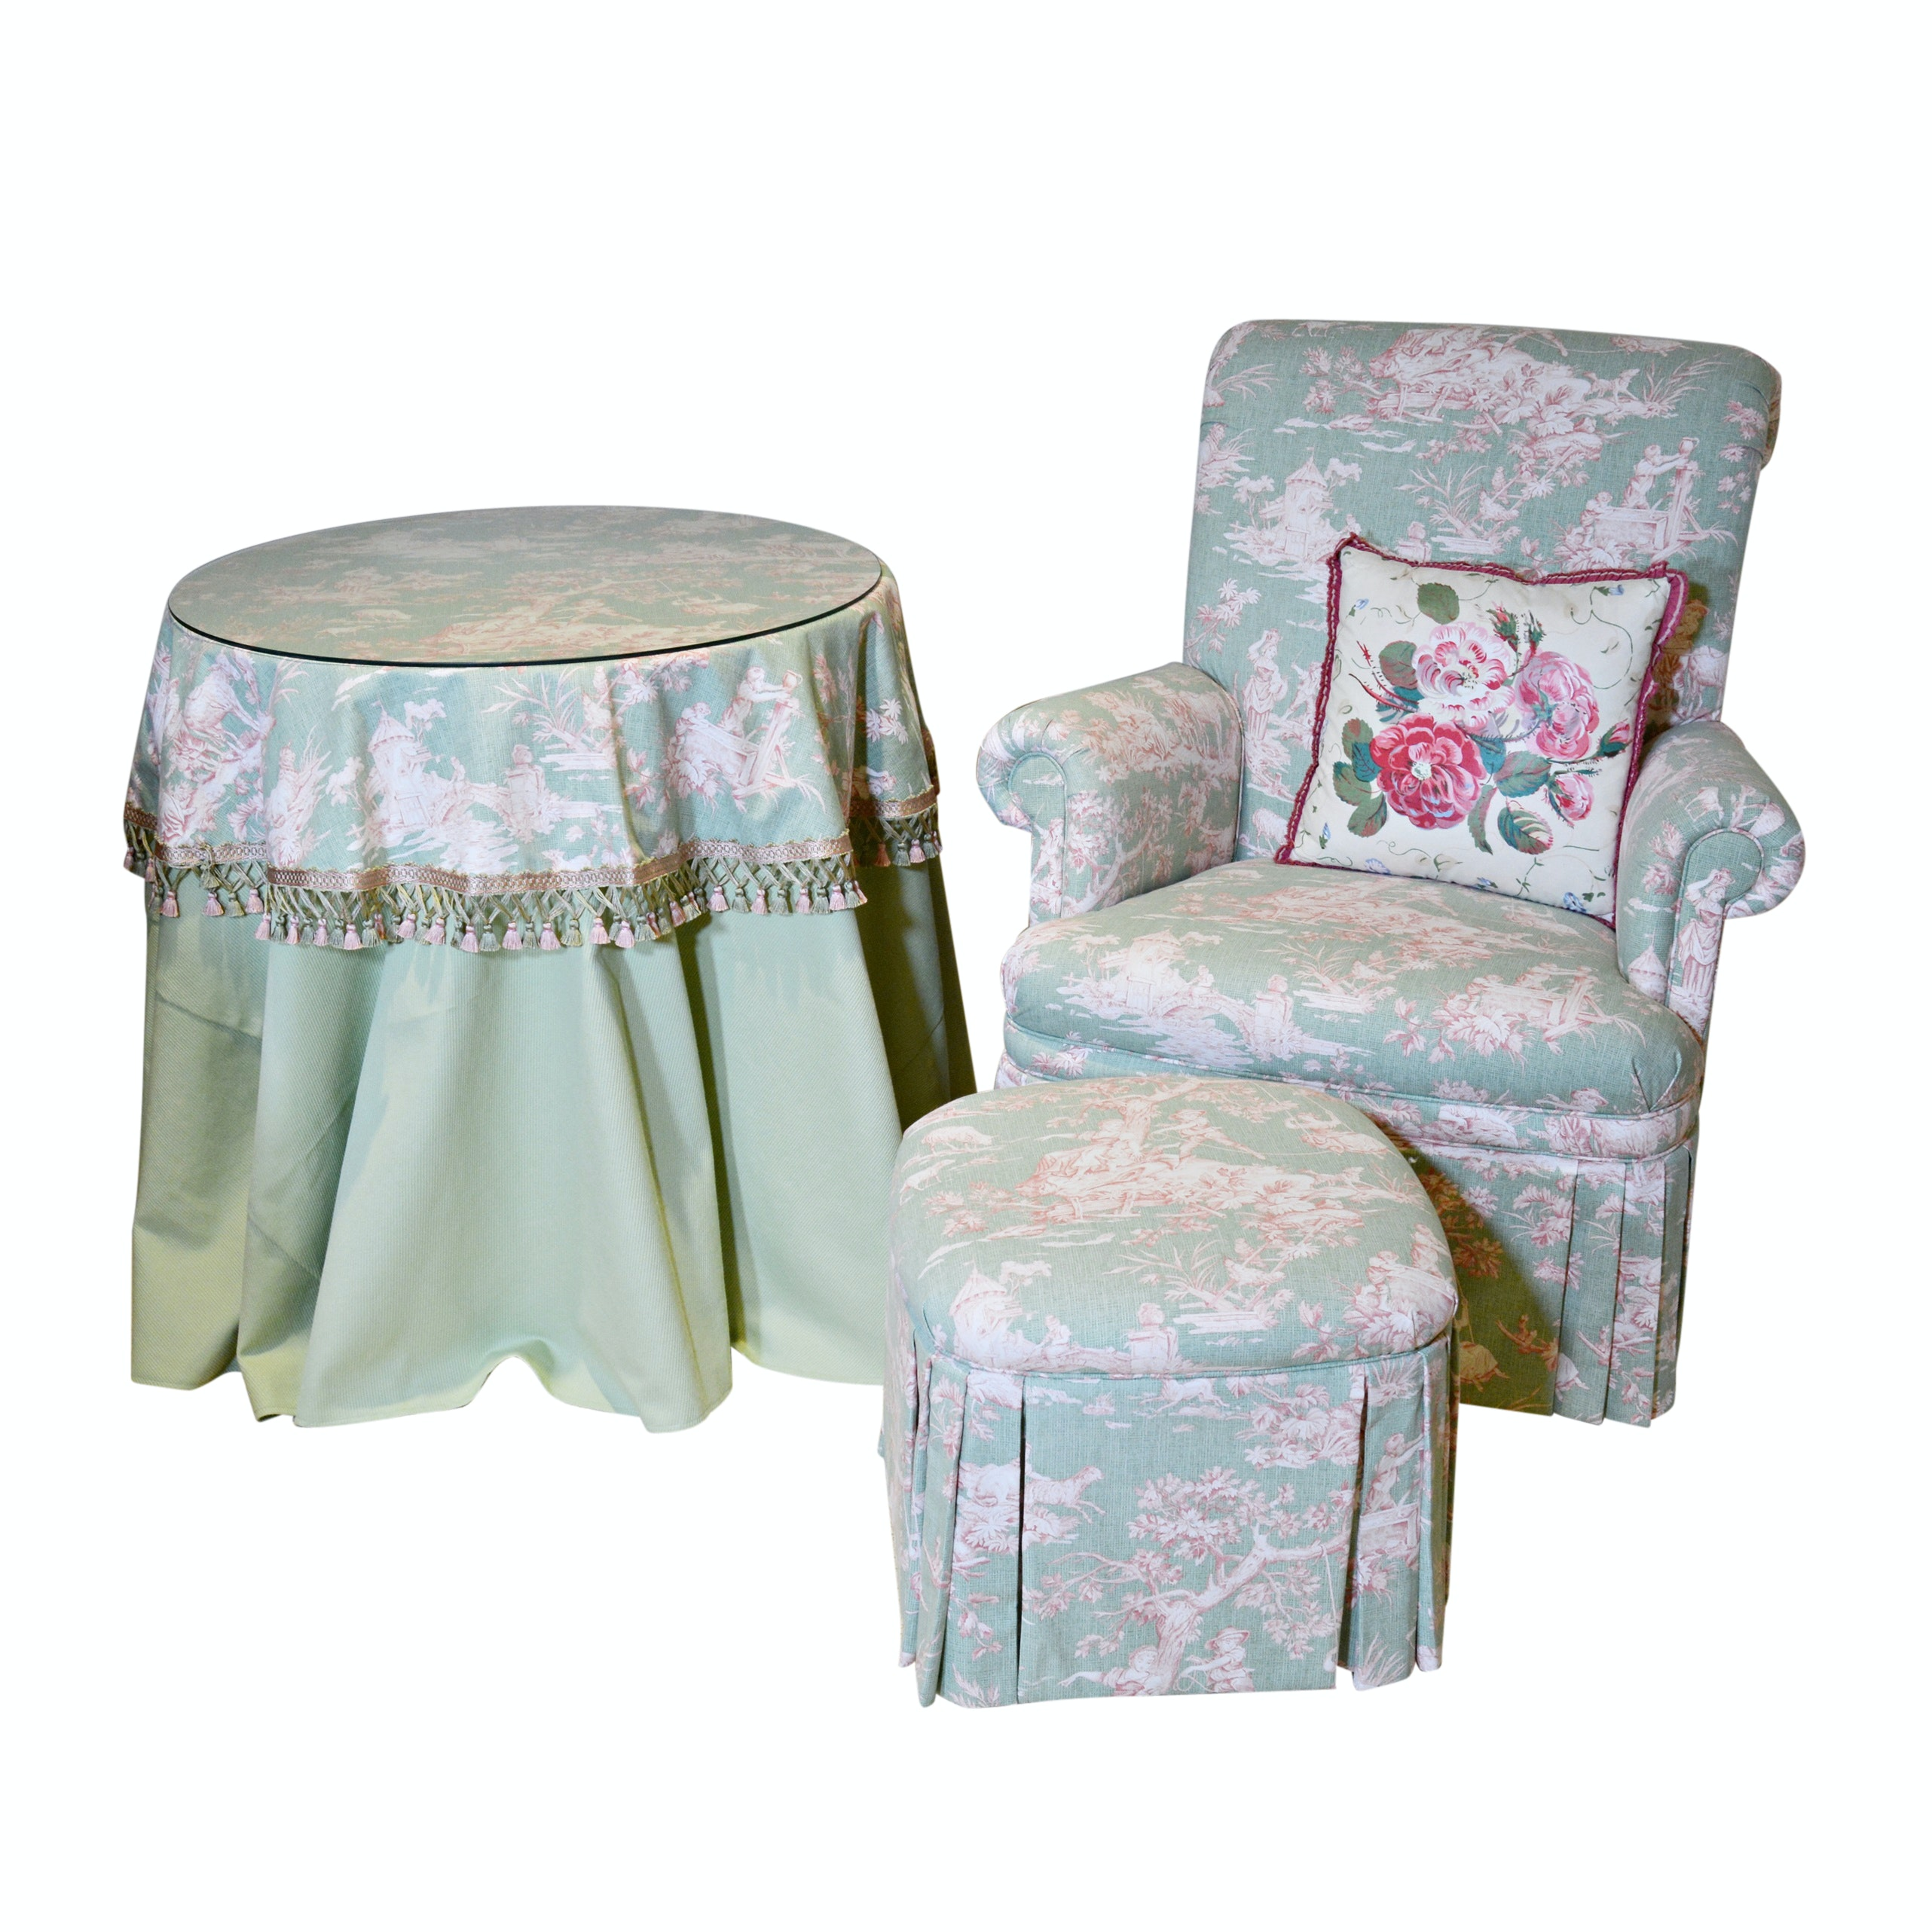 Mint Toile Upholstered Armchair and Ottoman by Michael Thomas Furniture